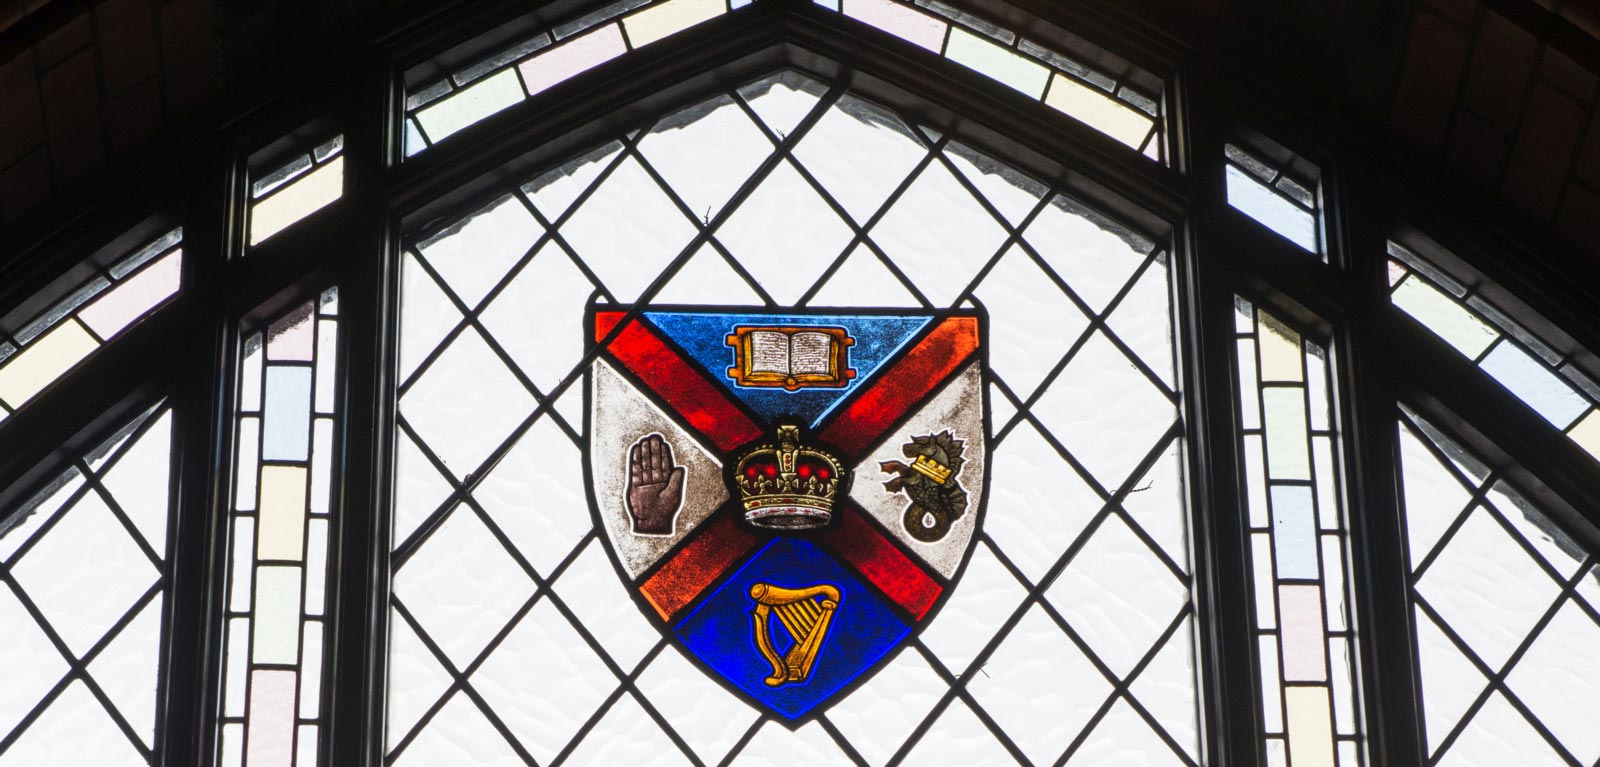 Graduate School window with crest